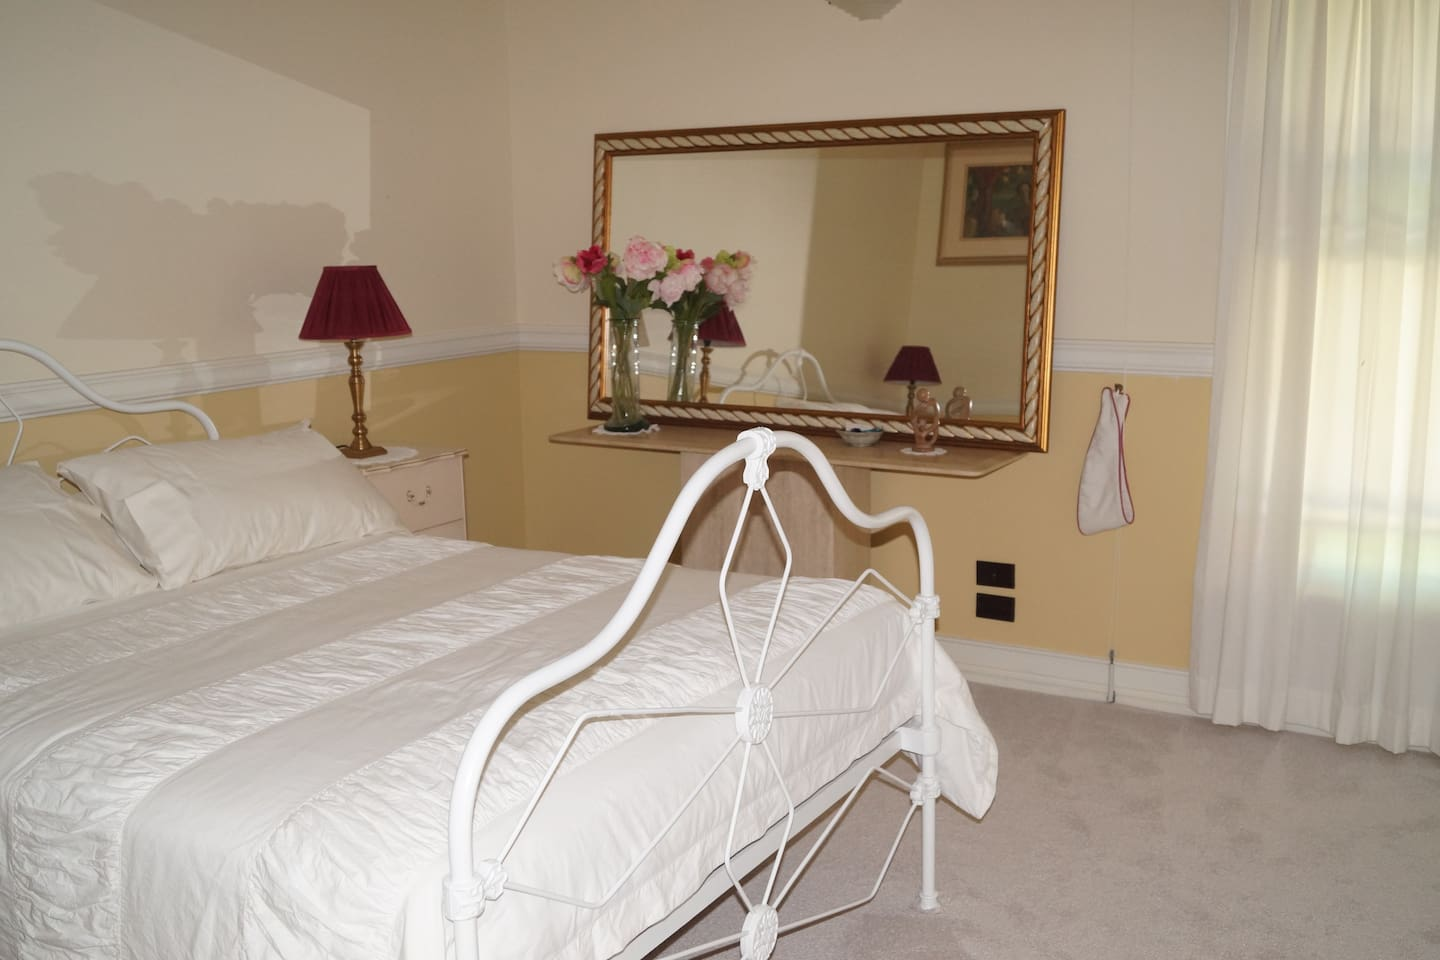 Beautiful antique cast iron double bed, quality lamps and mirror.